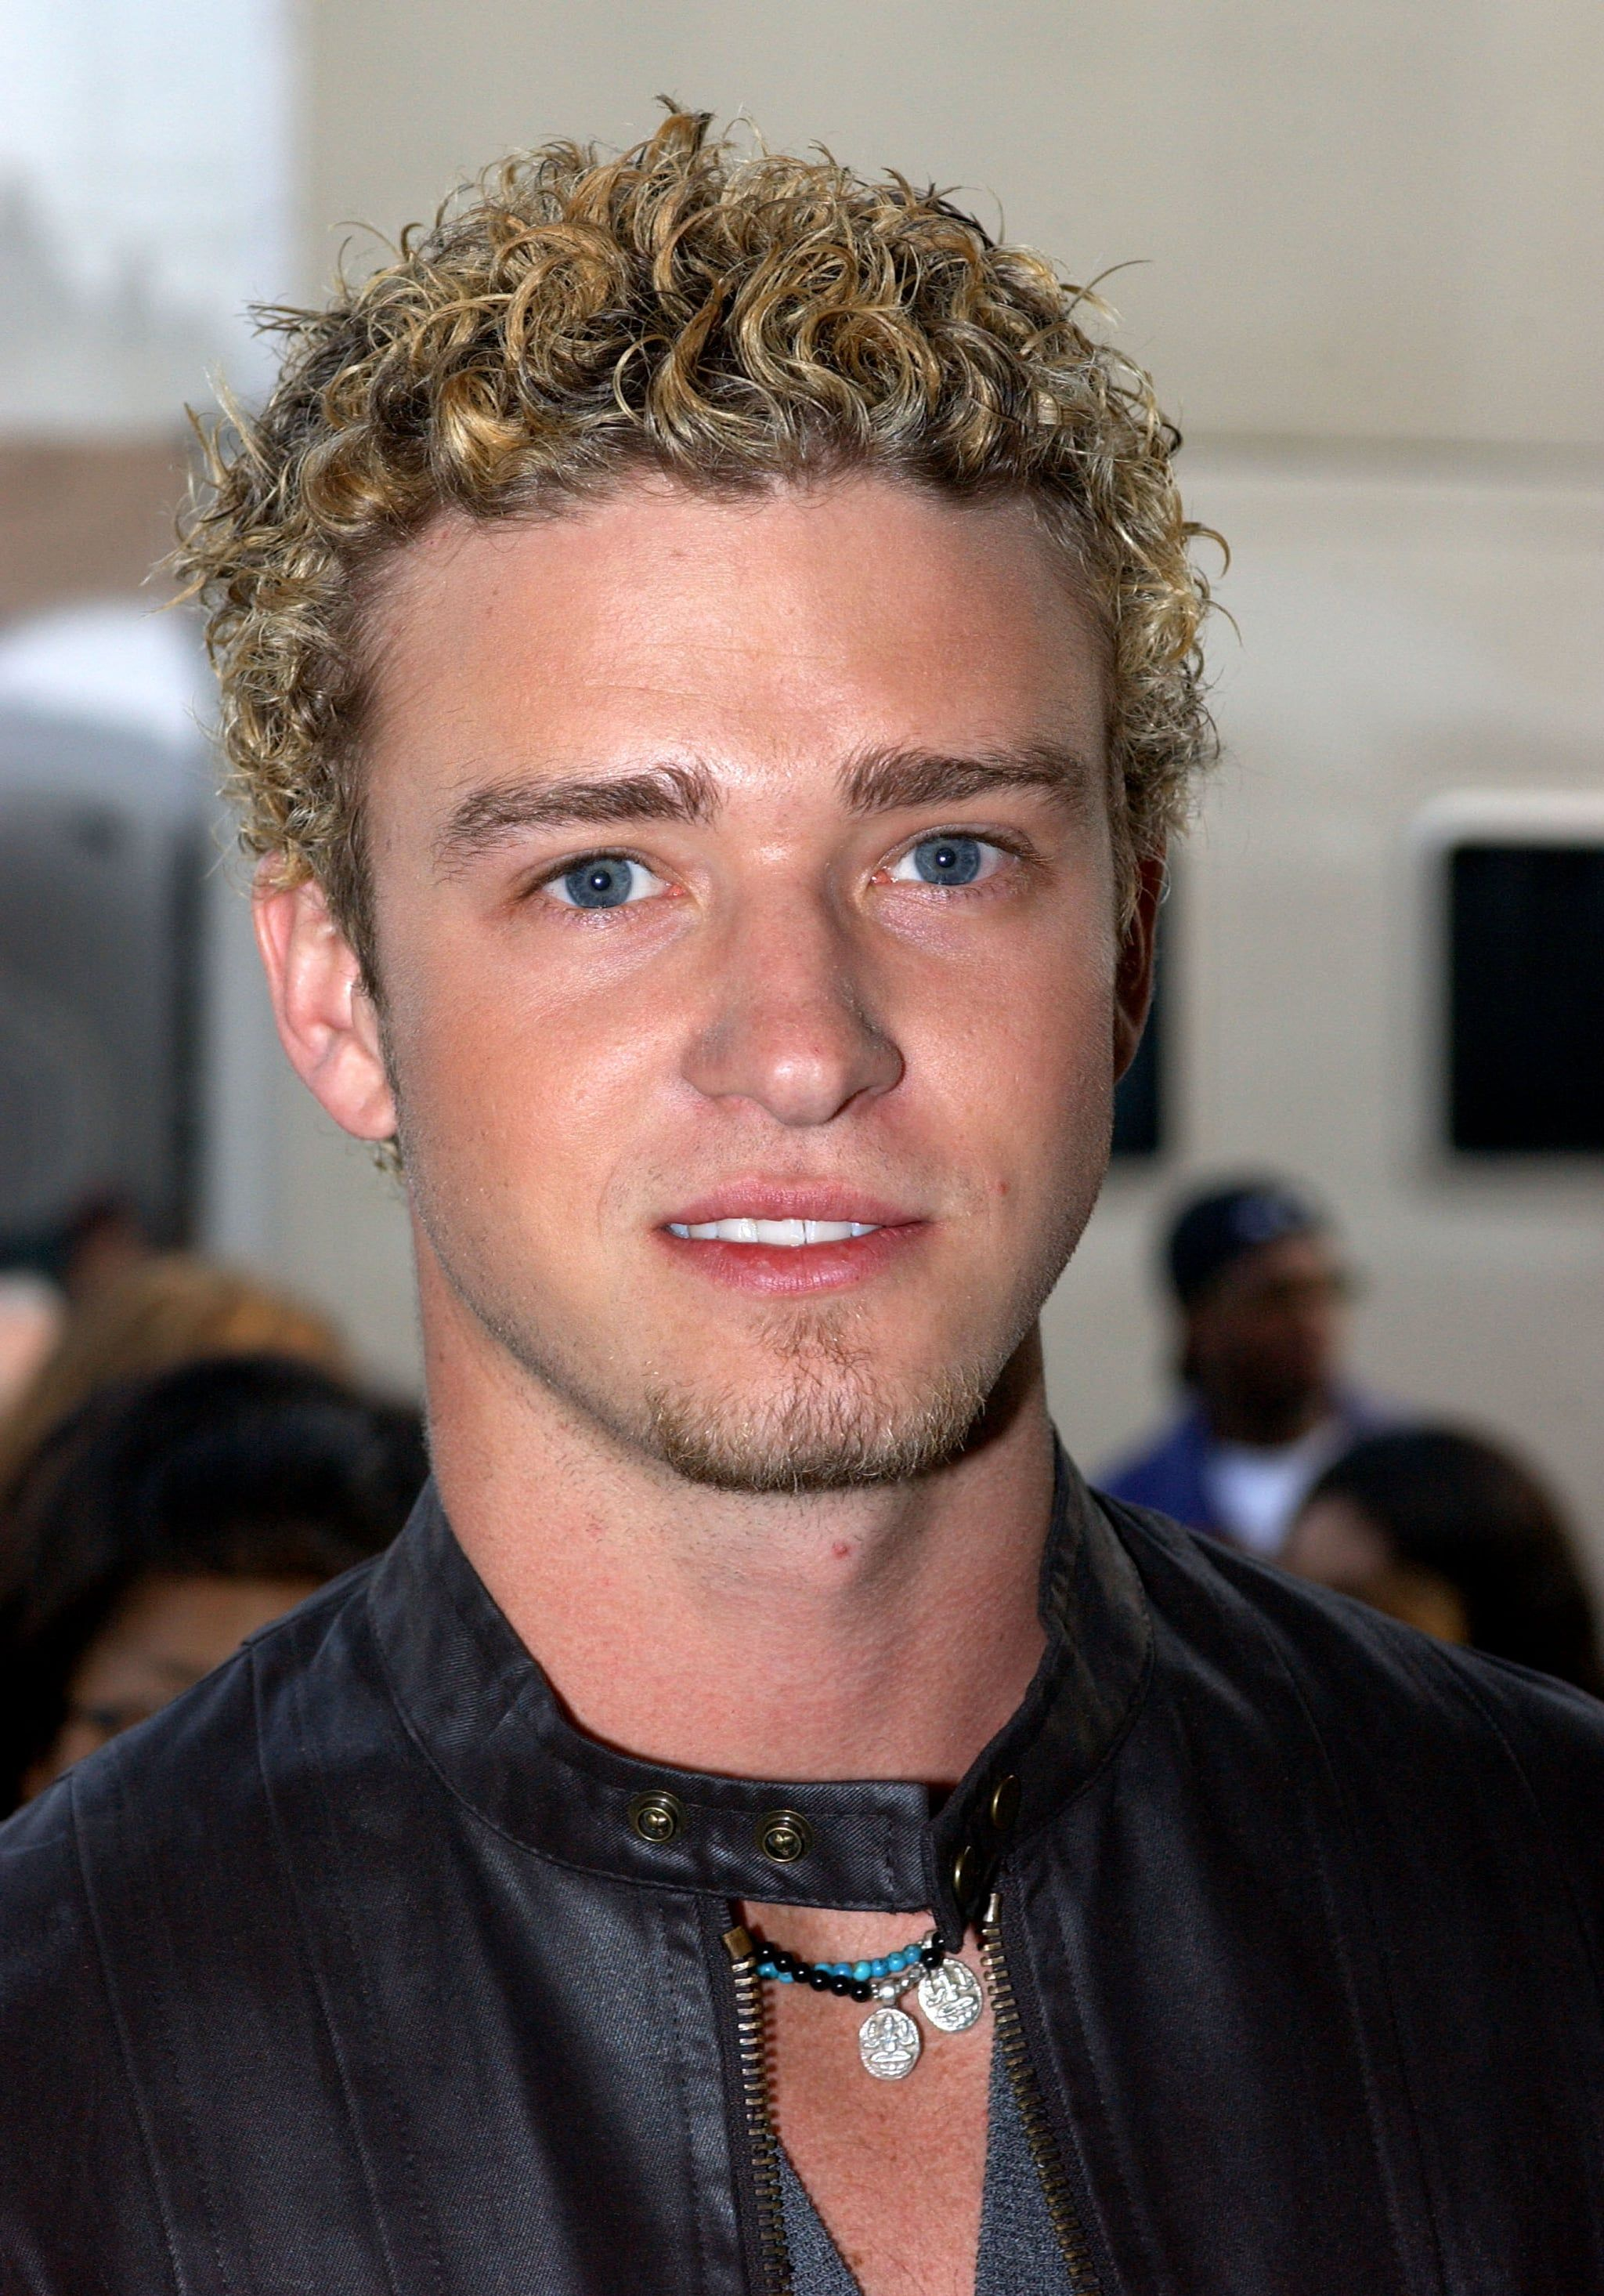 When He Somehow Pulled Off Frosted Tips In 2020 Justin Timberlake Curly Hair Men Timberlake